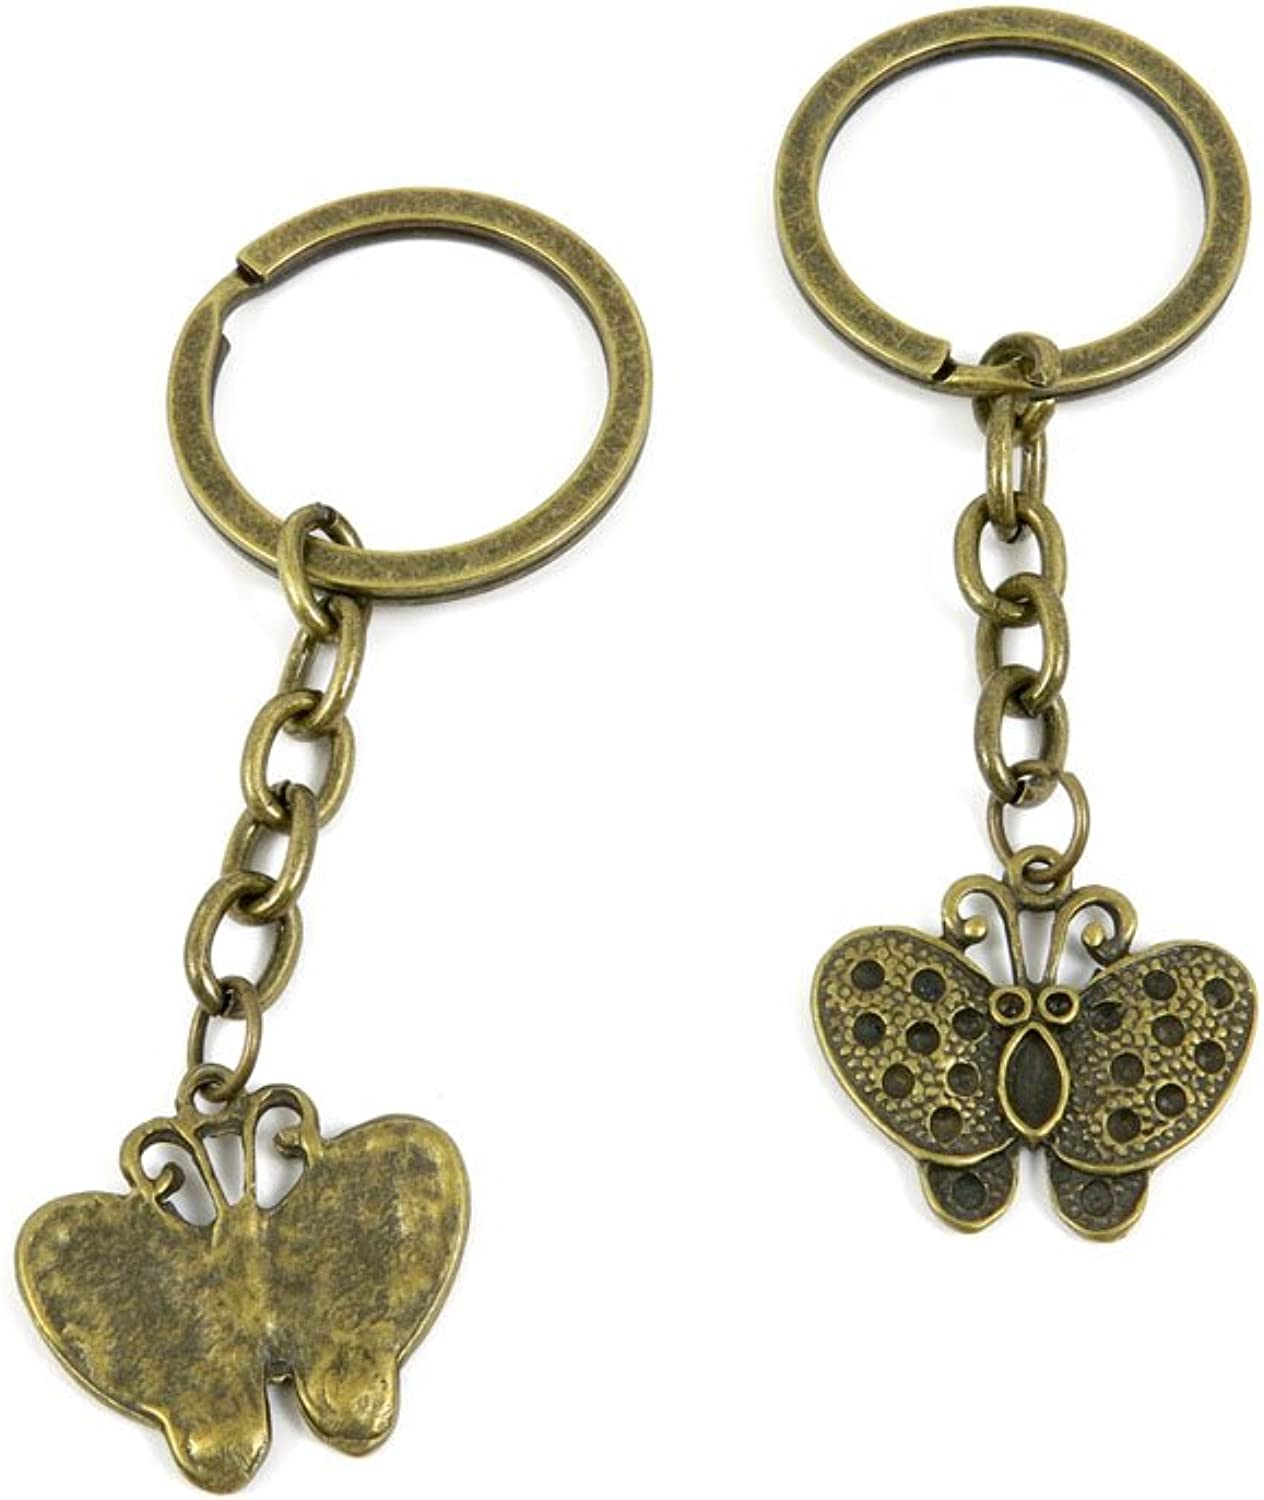 200 Pieces Fashion Jewelry Keyring Keychain Door Car Key Tag Ring Chain Supplier Supply Wholesale Bulk Lots Q6PI2 Butterfly